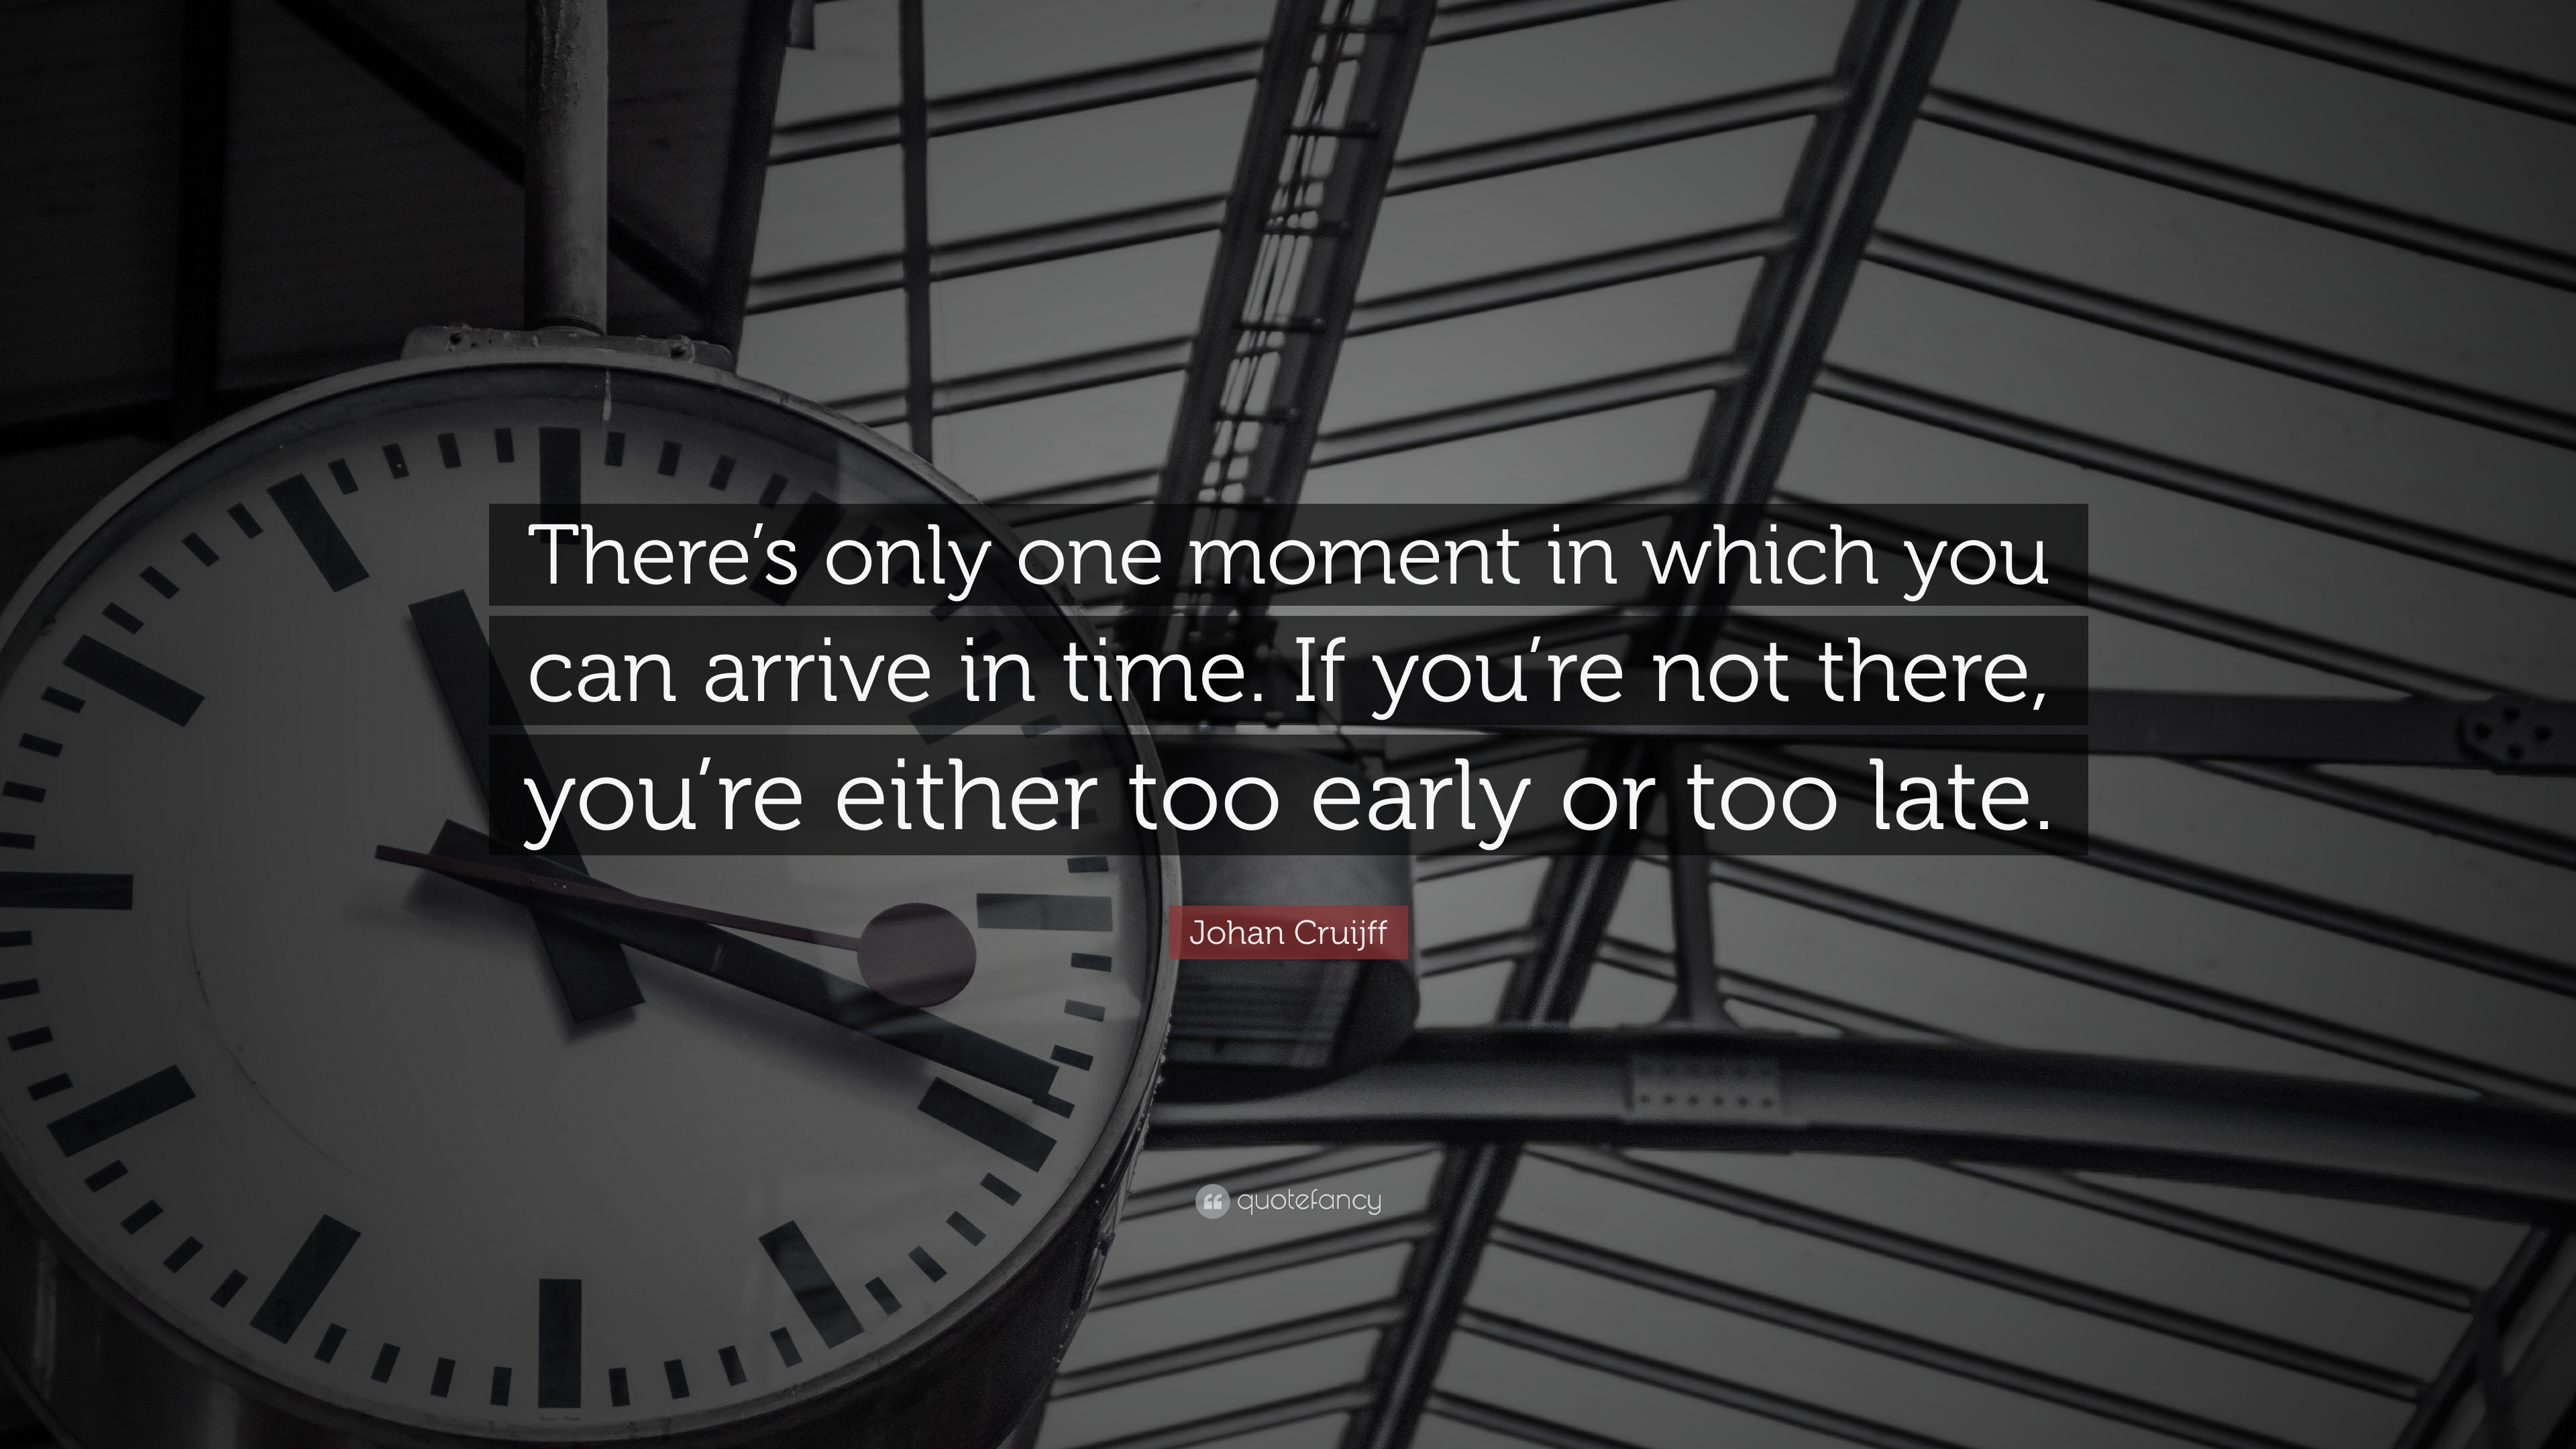 Johan Cruijff Quote Theres Only One Moment In Which You Can